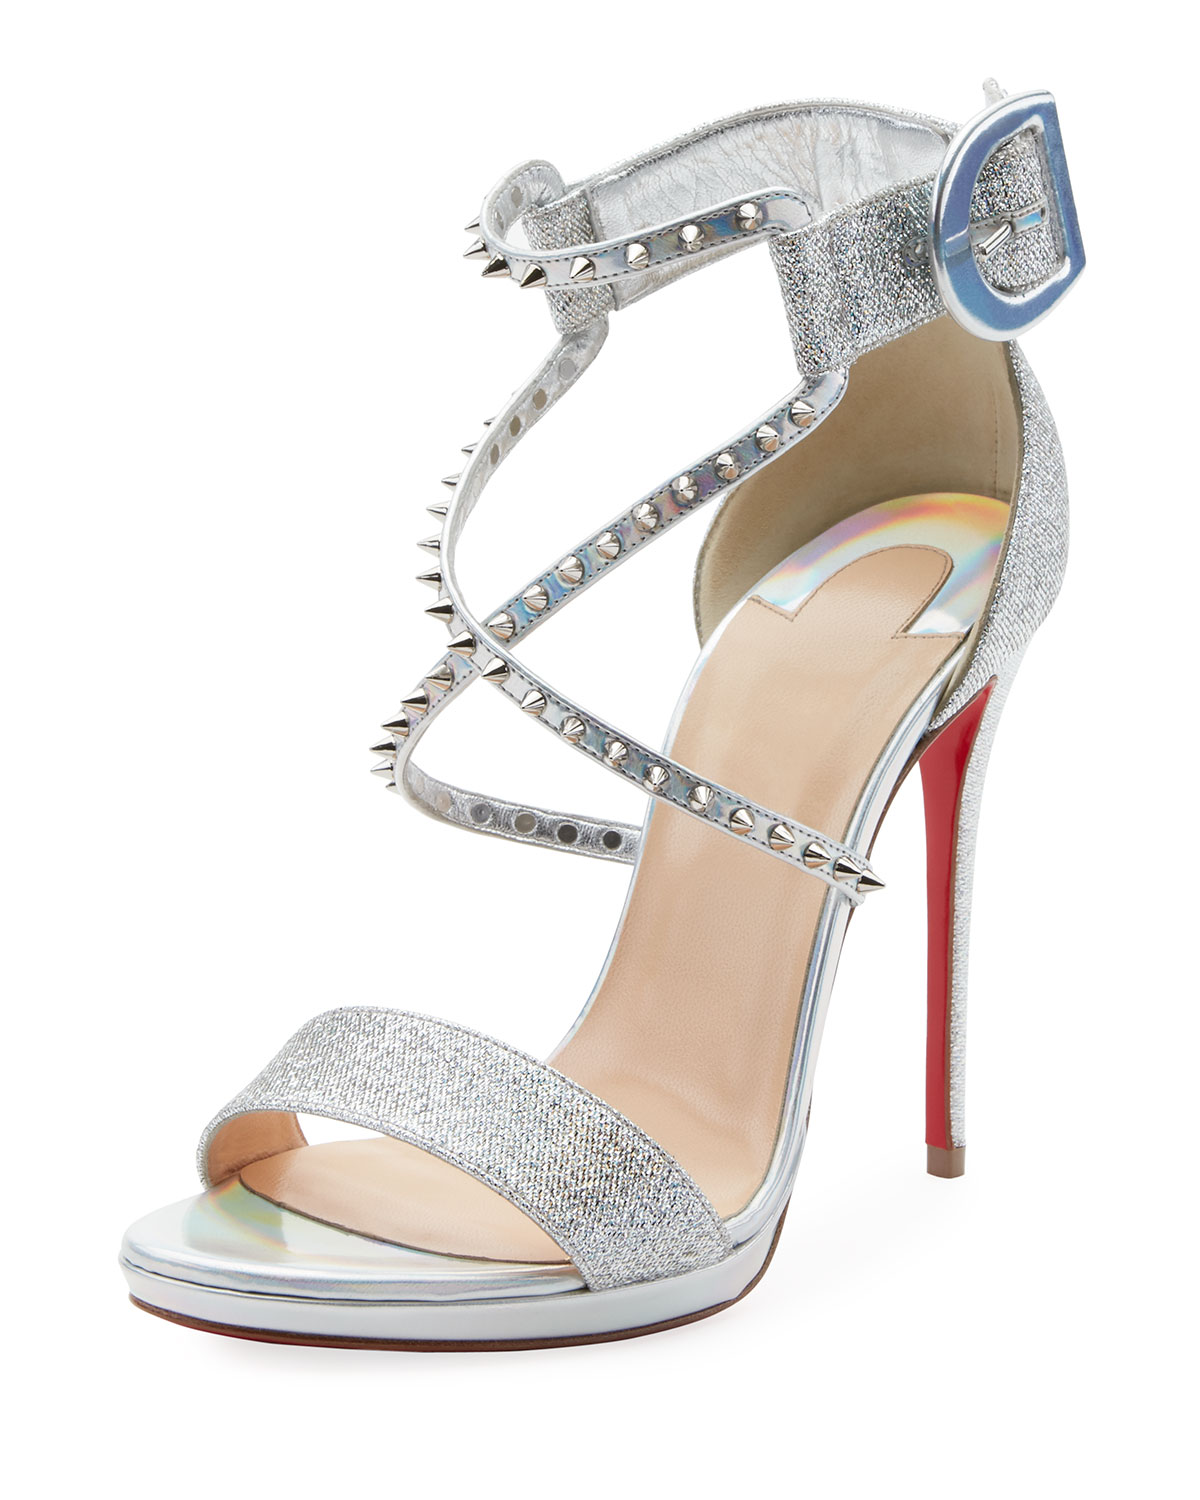 timeless design b4187 b7fea Choca Lux 120mm Metallic Fabric Red Sole Sandal